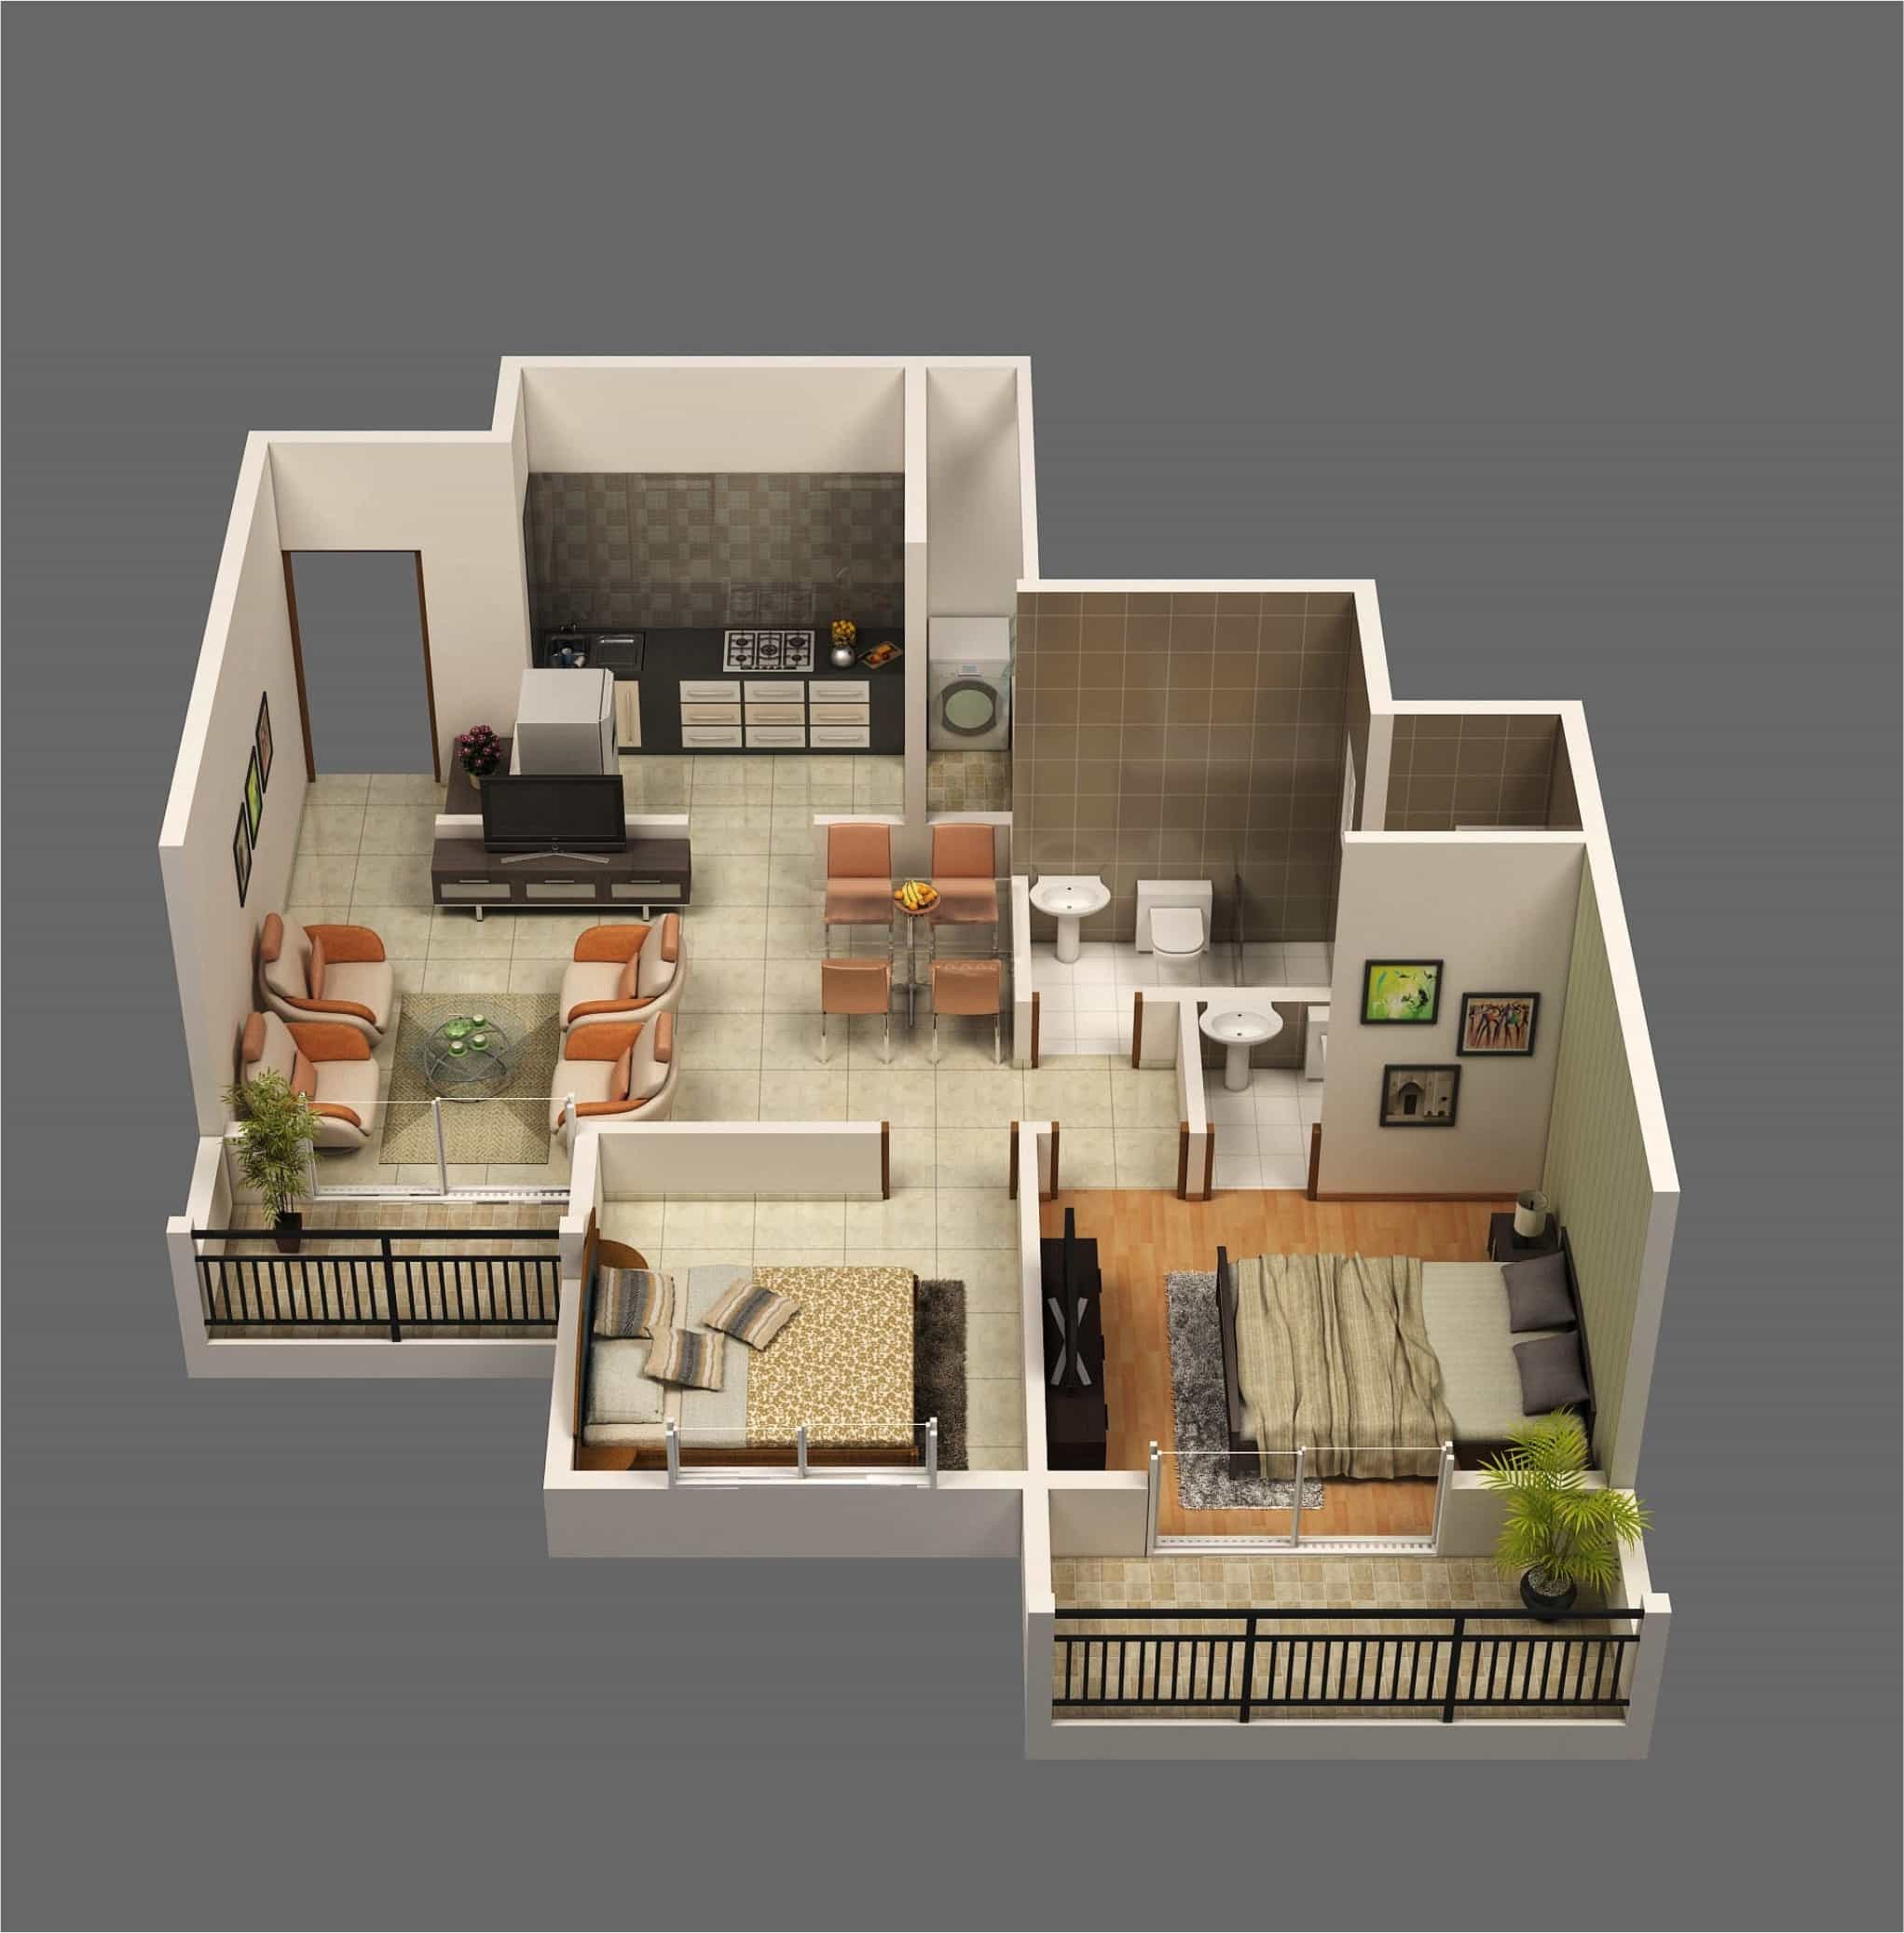 Modern Two Bedroom House Apartment Plans With Open Space Living Room 3D Layout (Image 13 of 17)